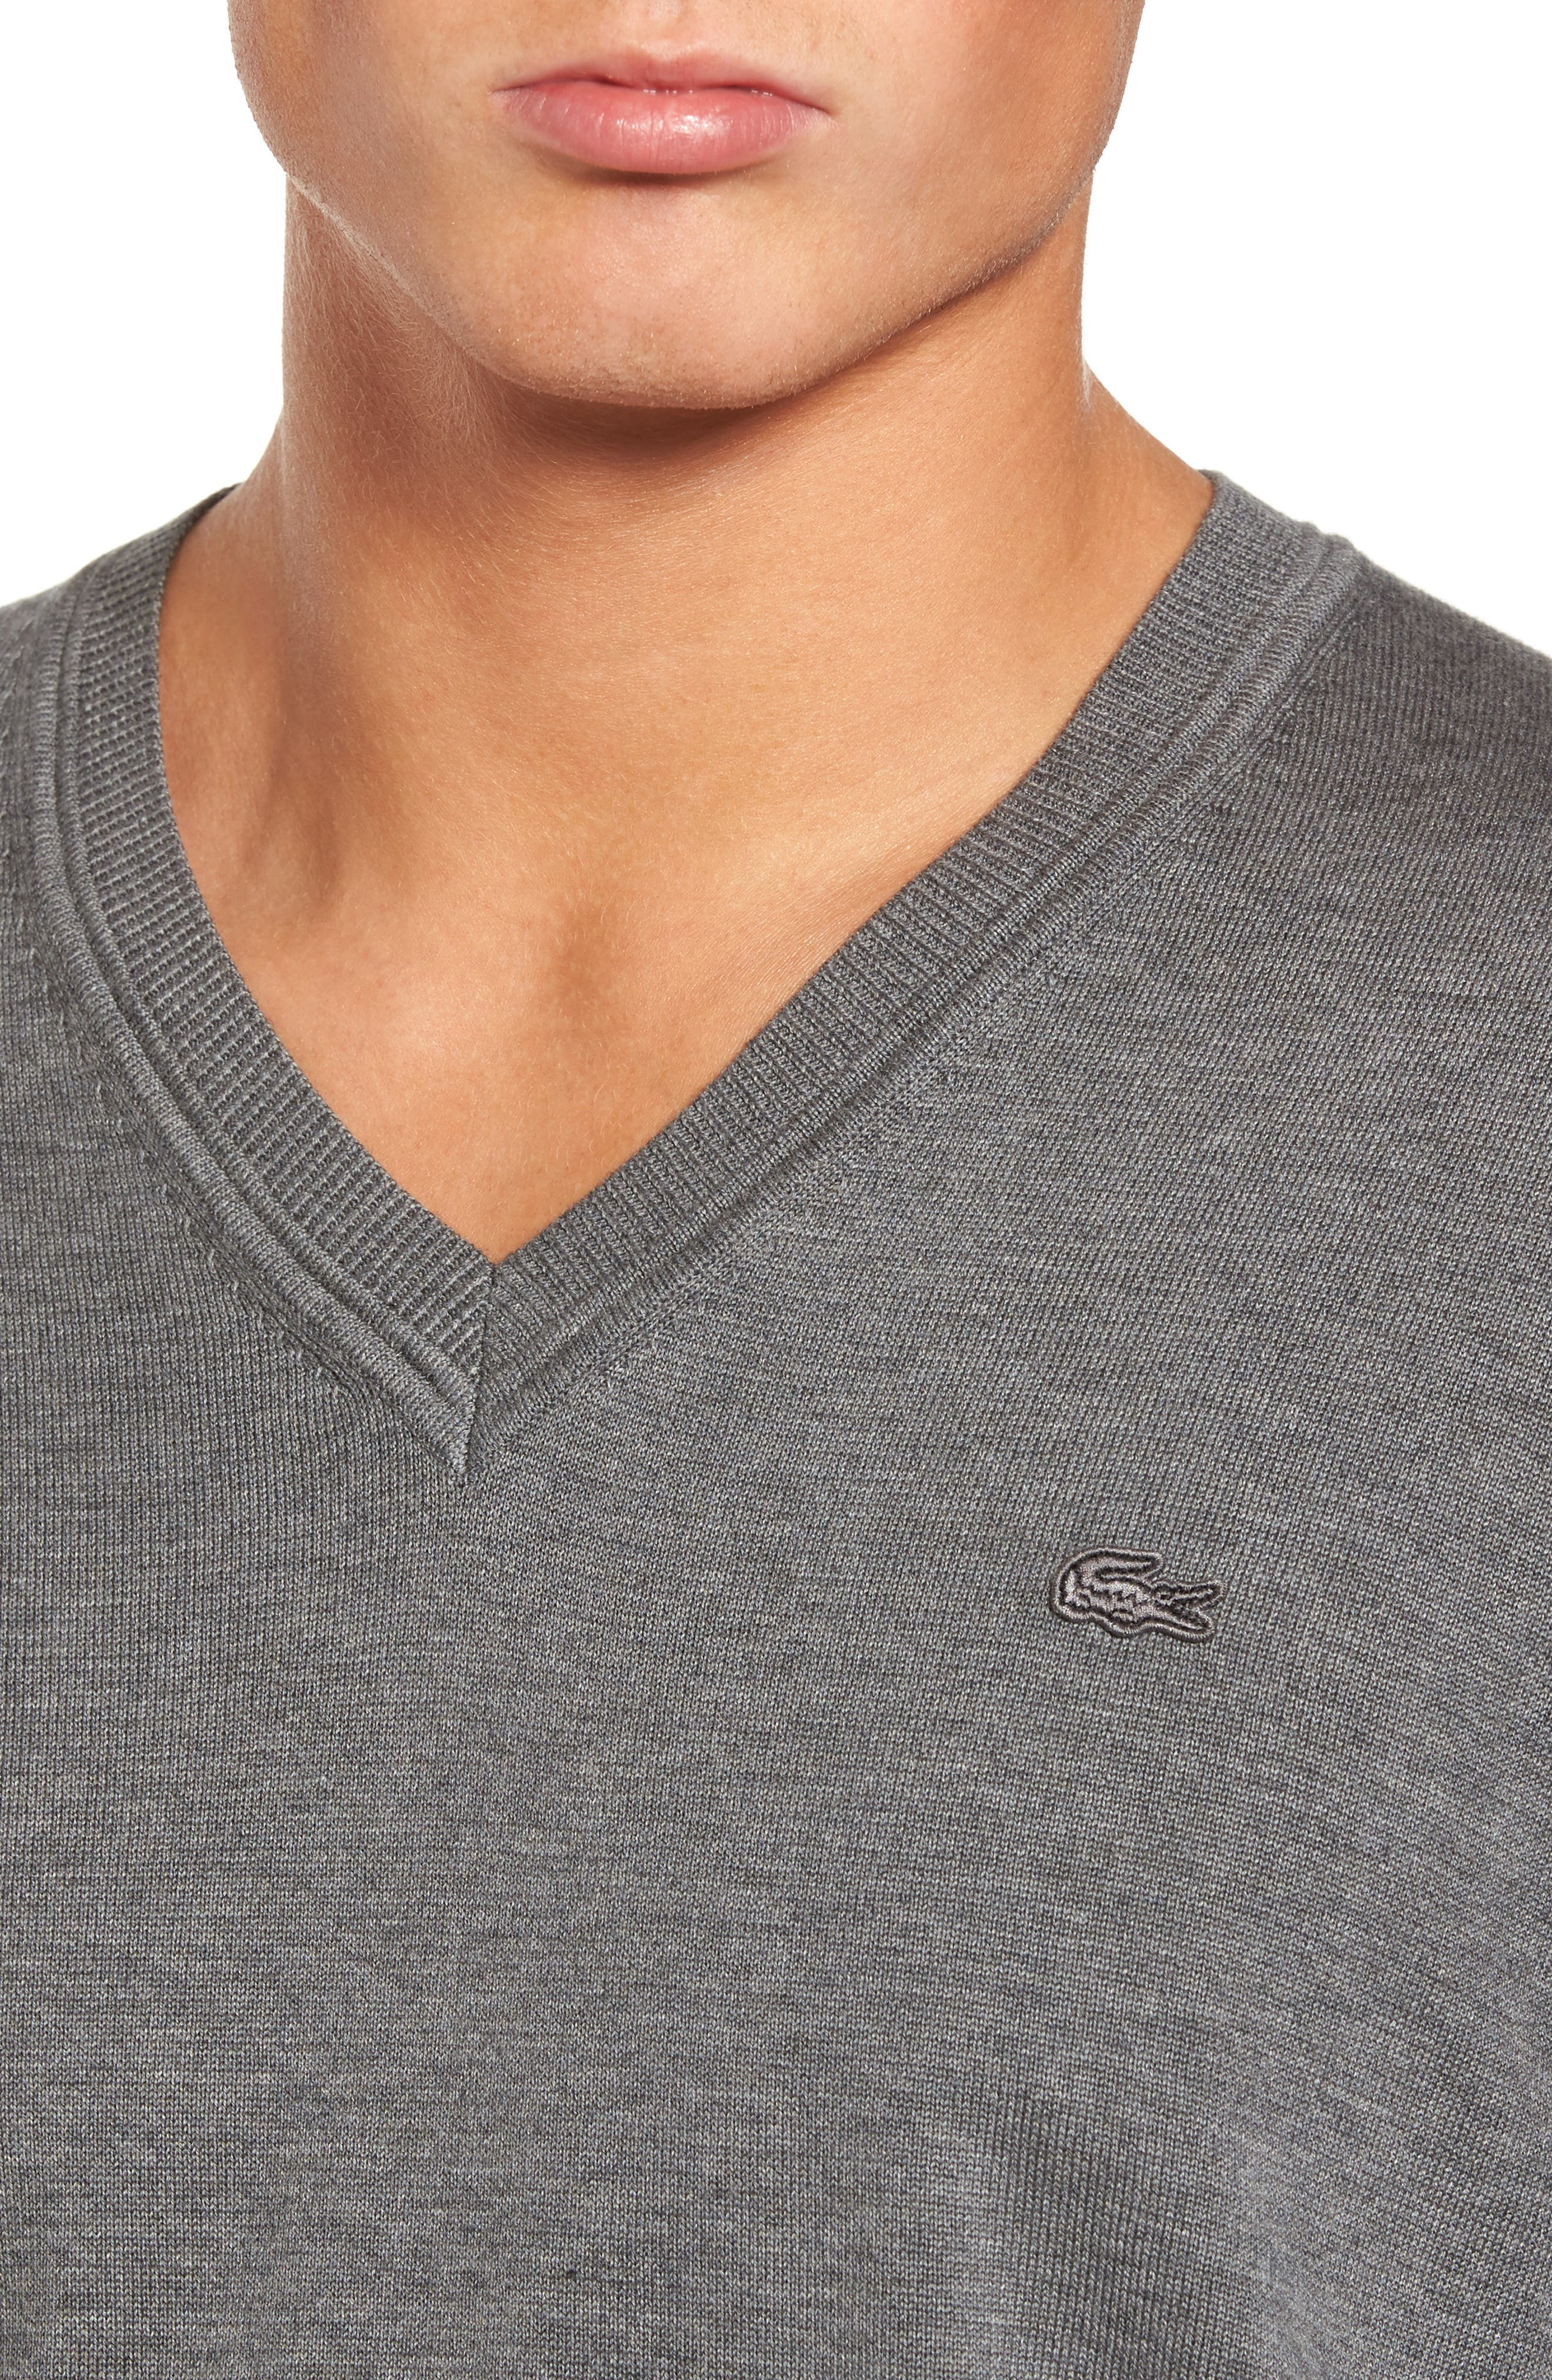 Cotton Jersey V-Neck Sweater,                             Alternate thumbnail 4, color,                             032